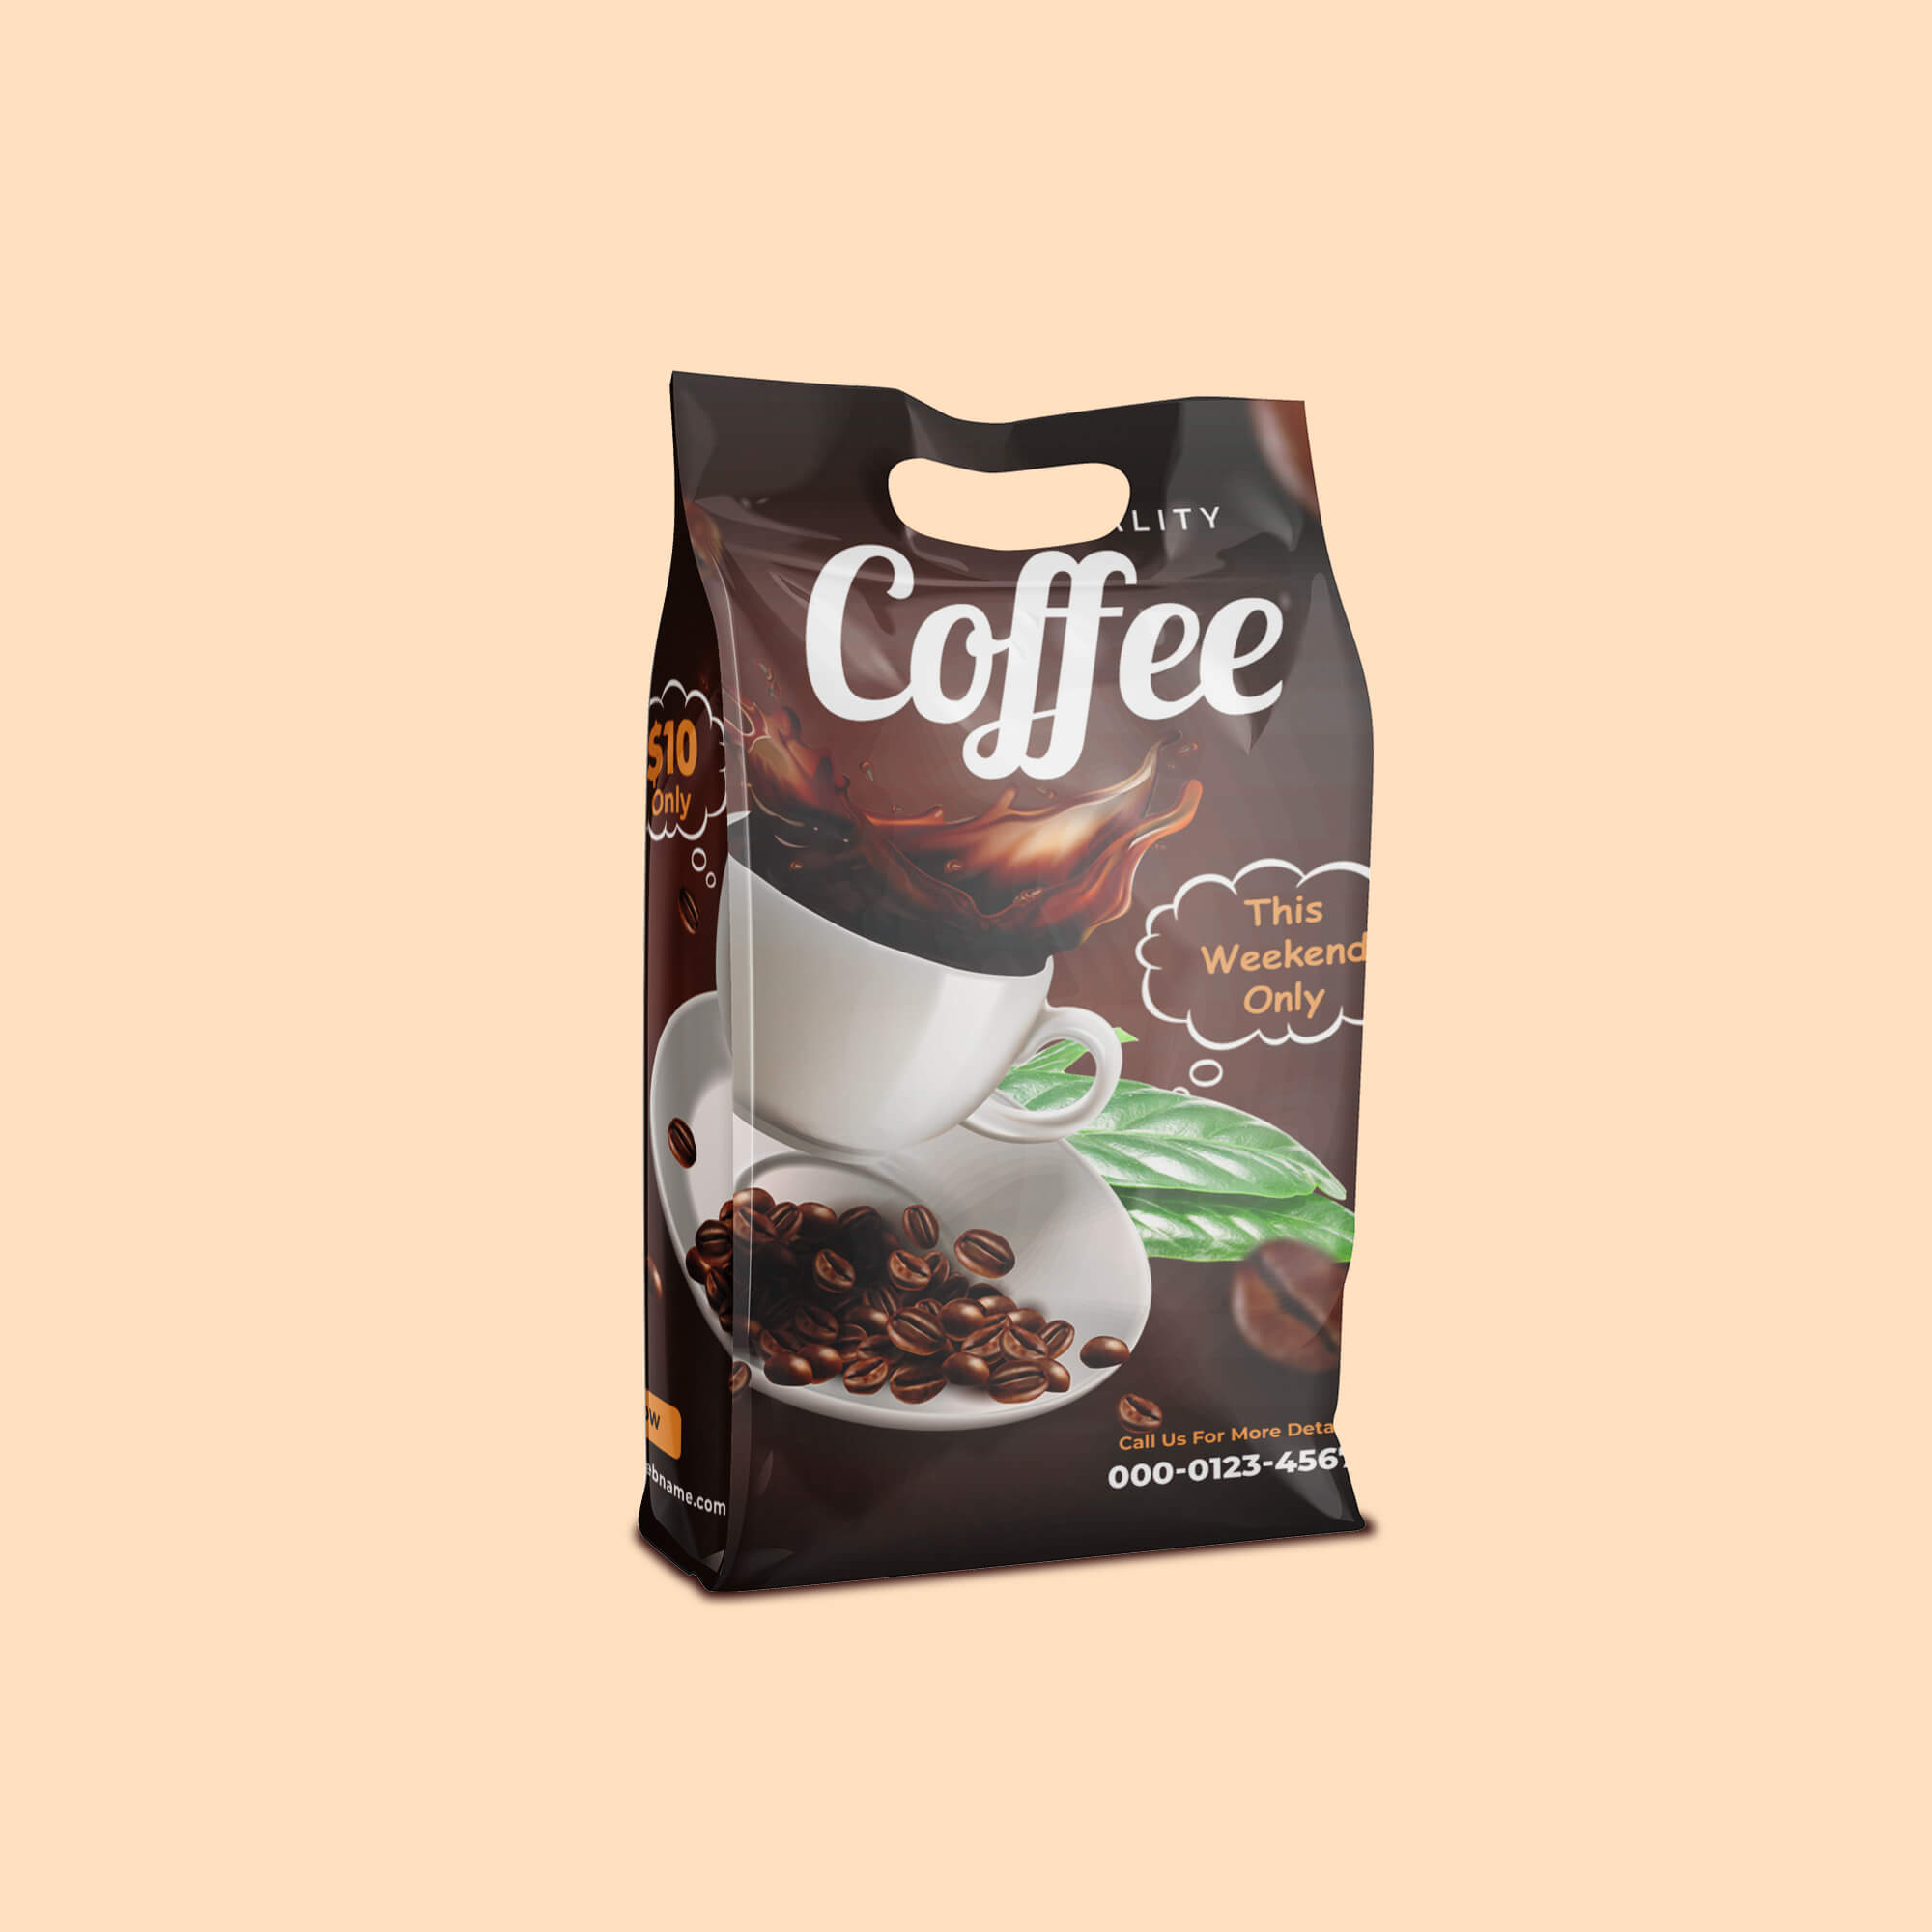 Design Free Coffee Packaging Mockup PSD Template (2)